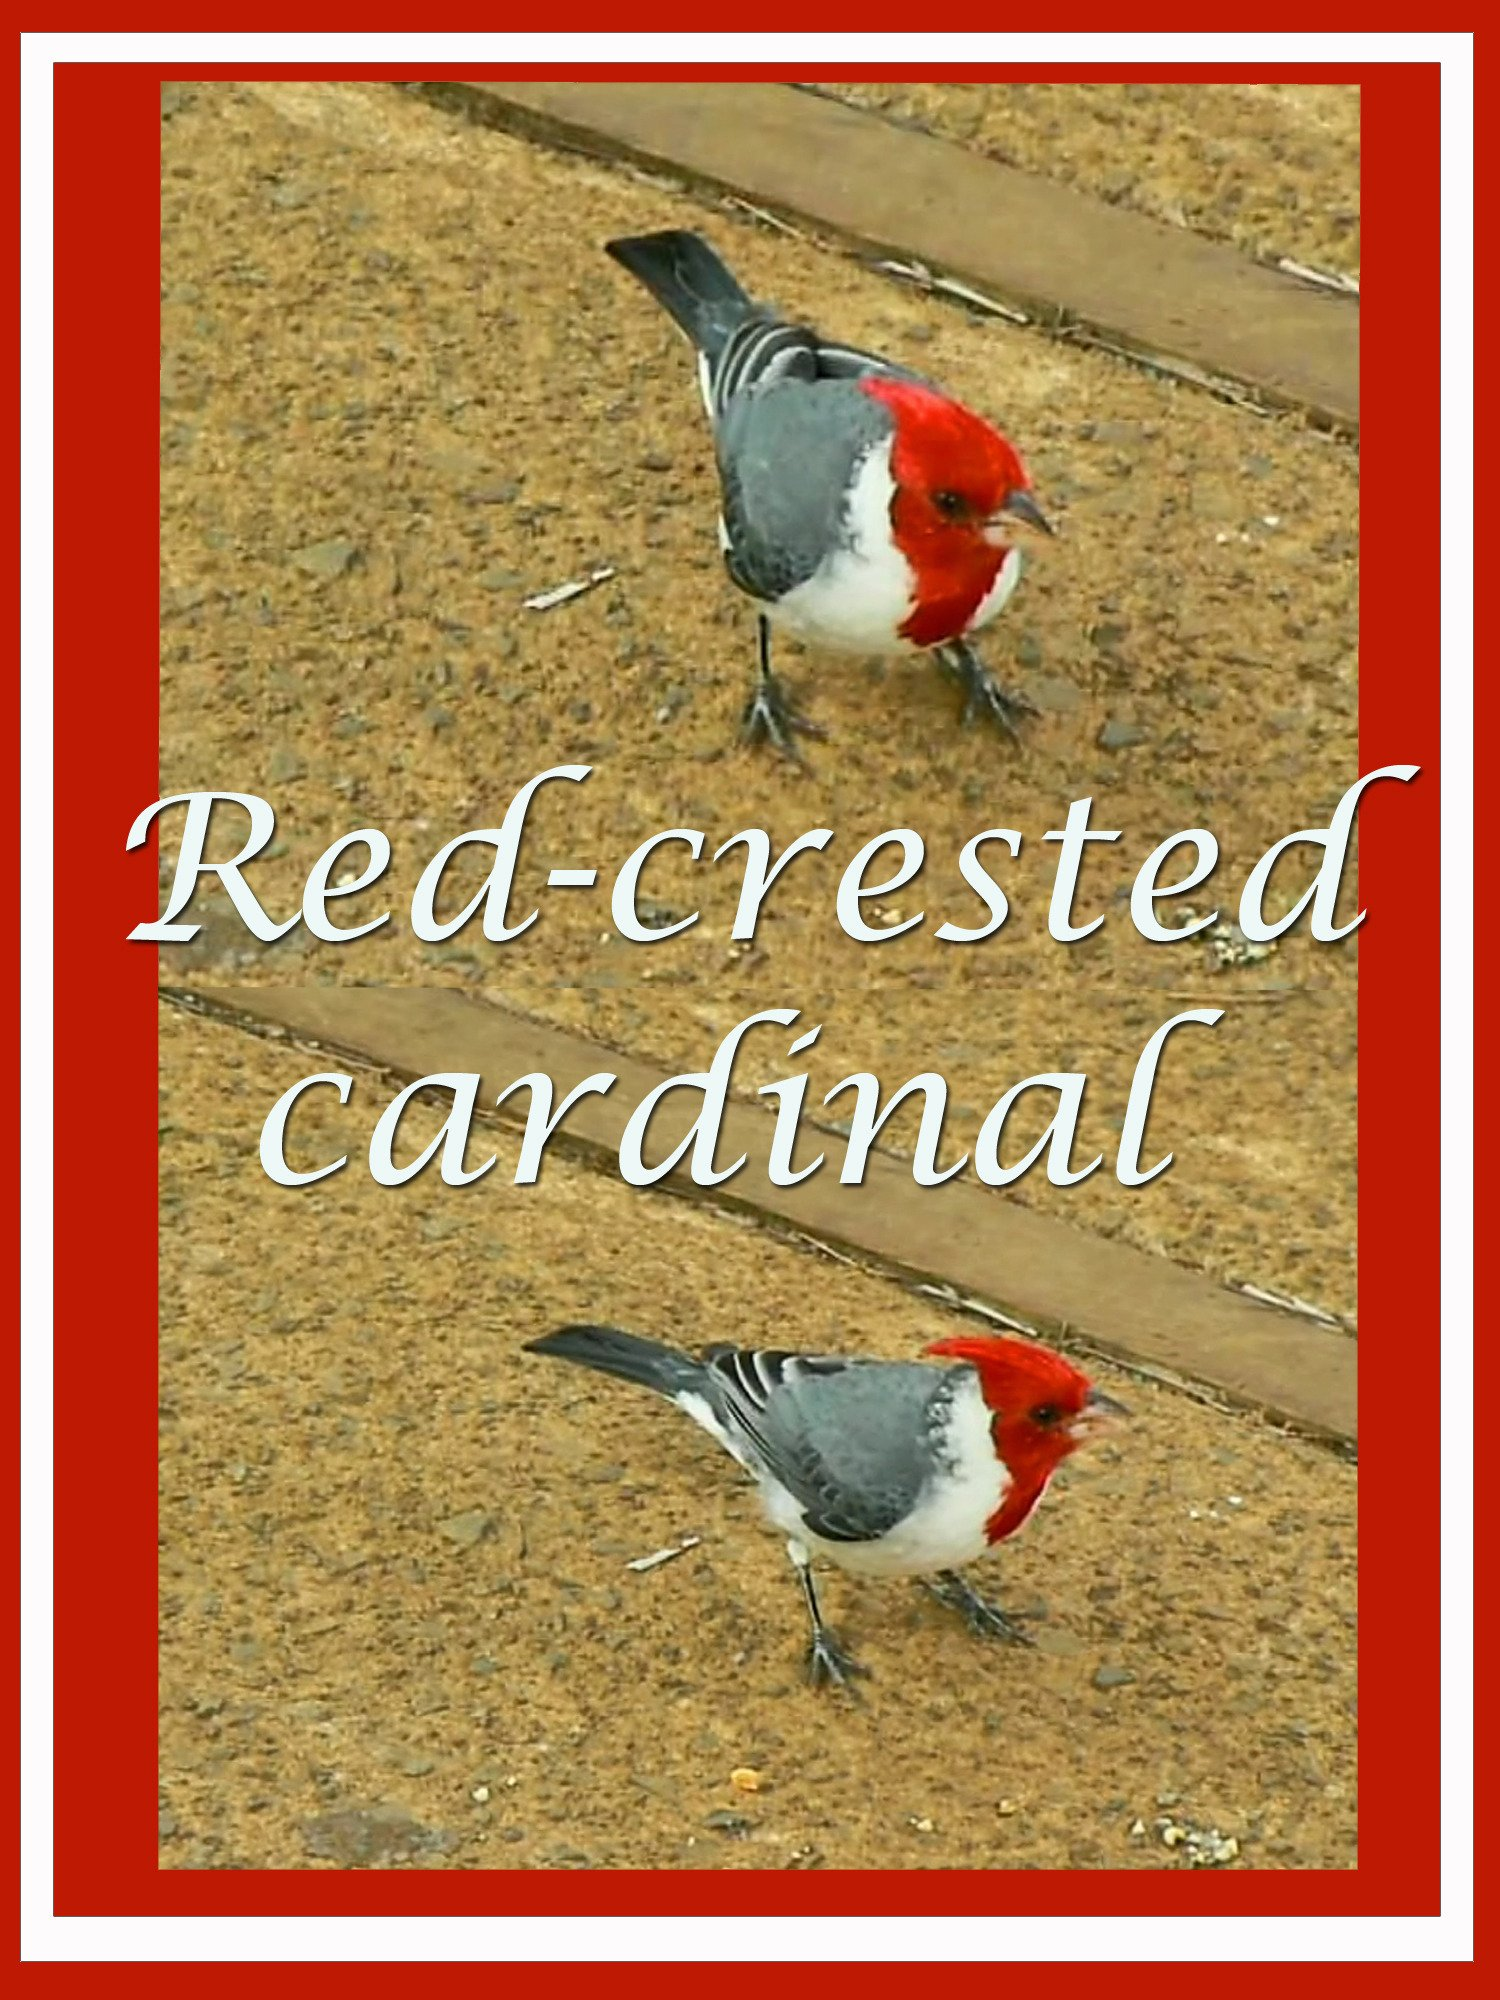 Clip: Red-crested cardinal